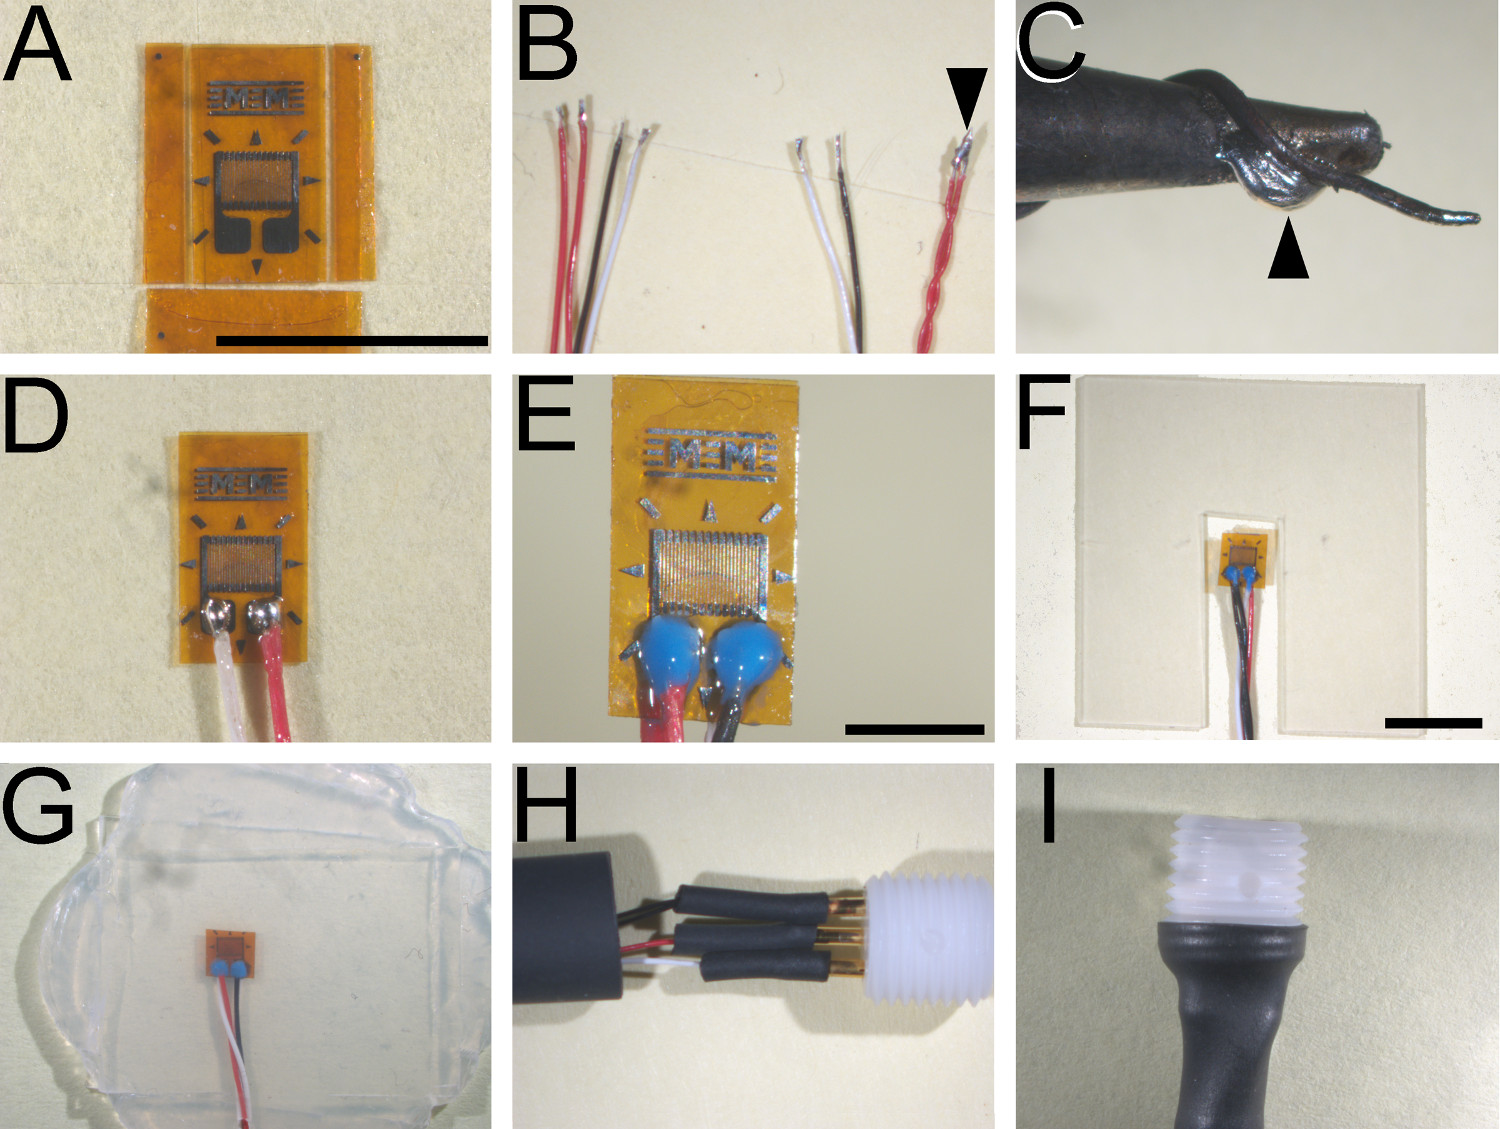 Fabrication And Implantation Of Miniature Dual Element Strain Gages Gauge Wiring Principal Stages Gage A Bonded Elements That Have Been Trimmed On Three Four Sides To Final Dimensions